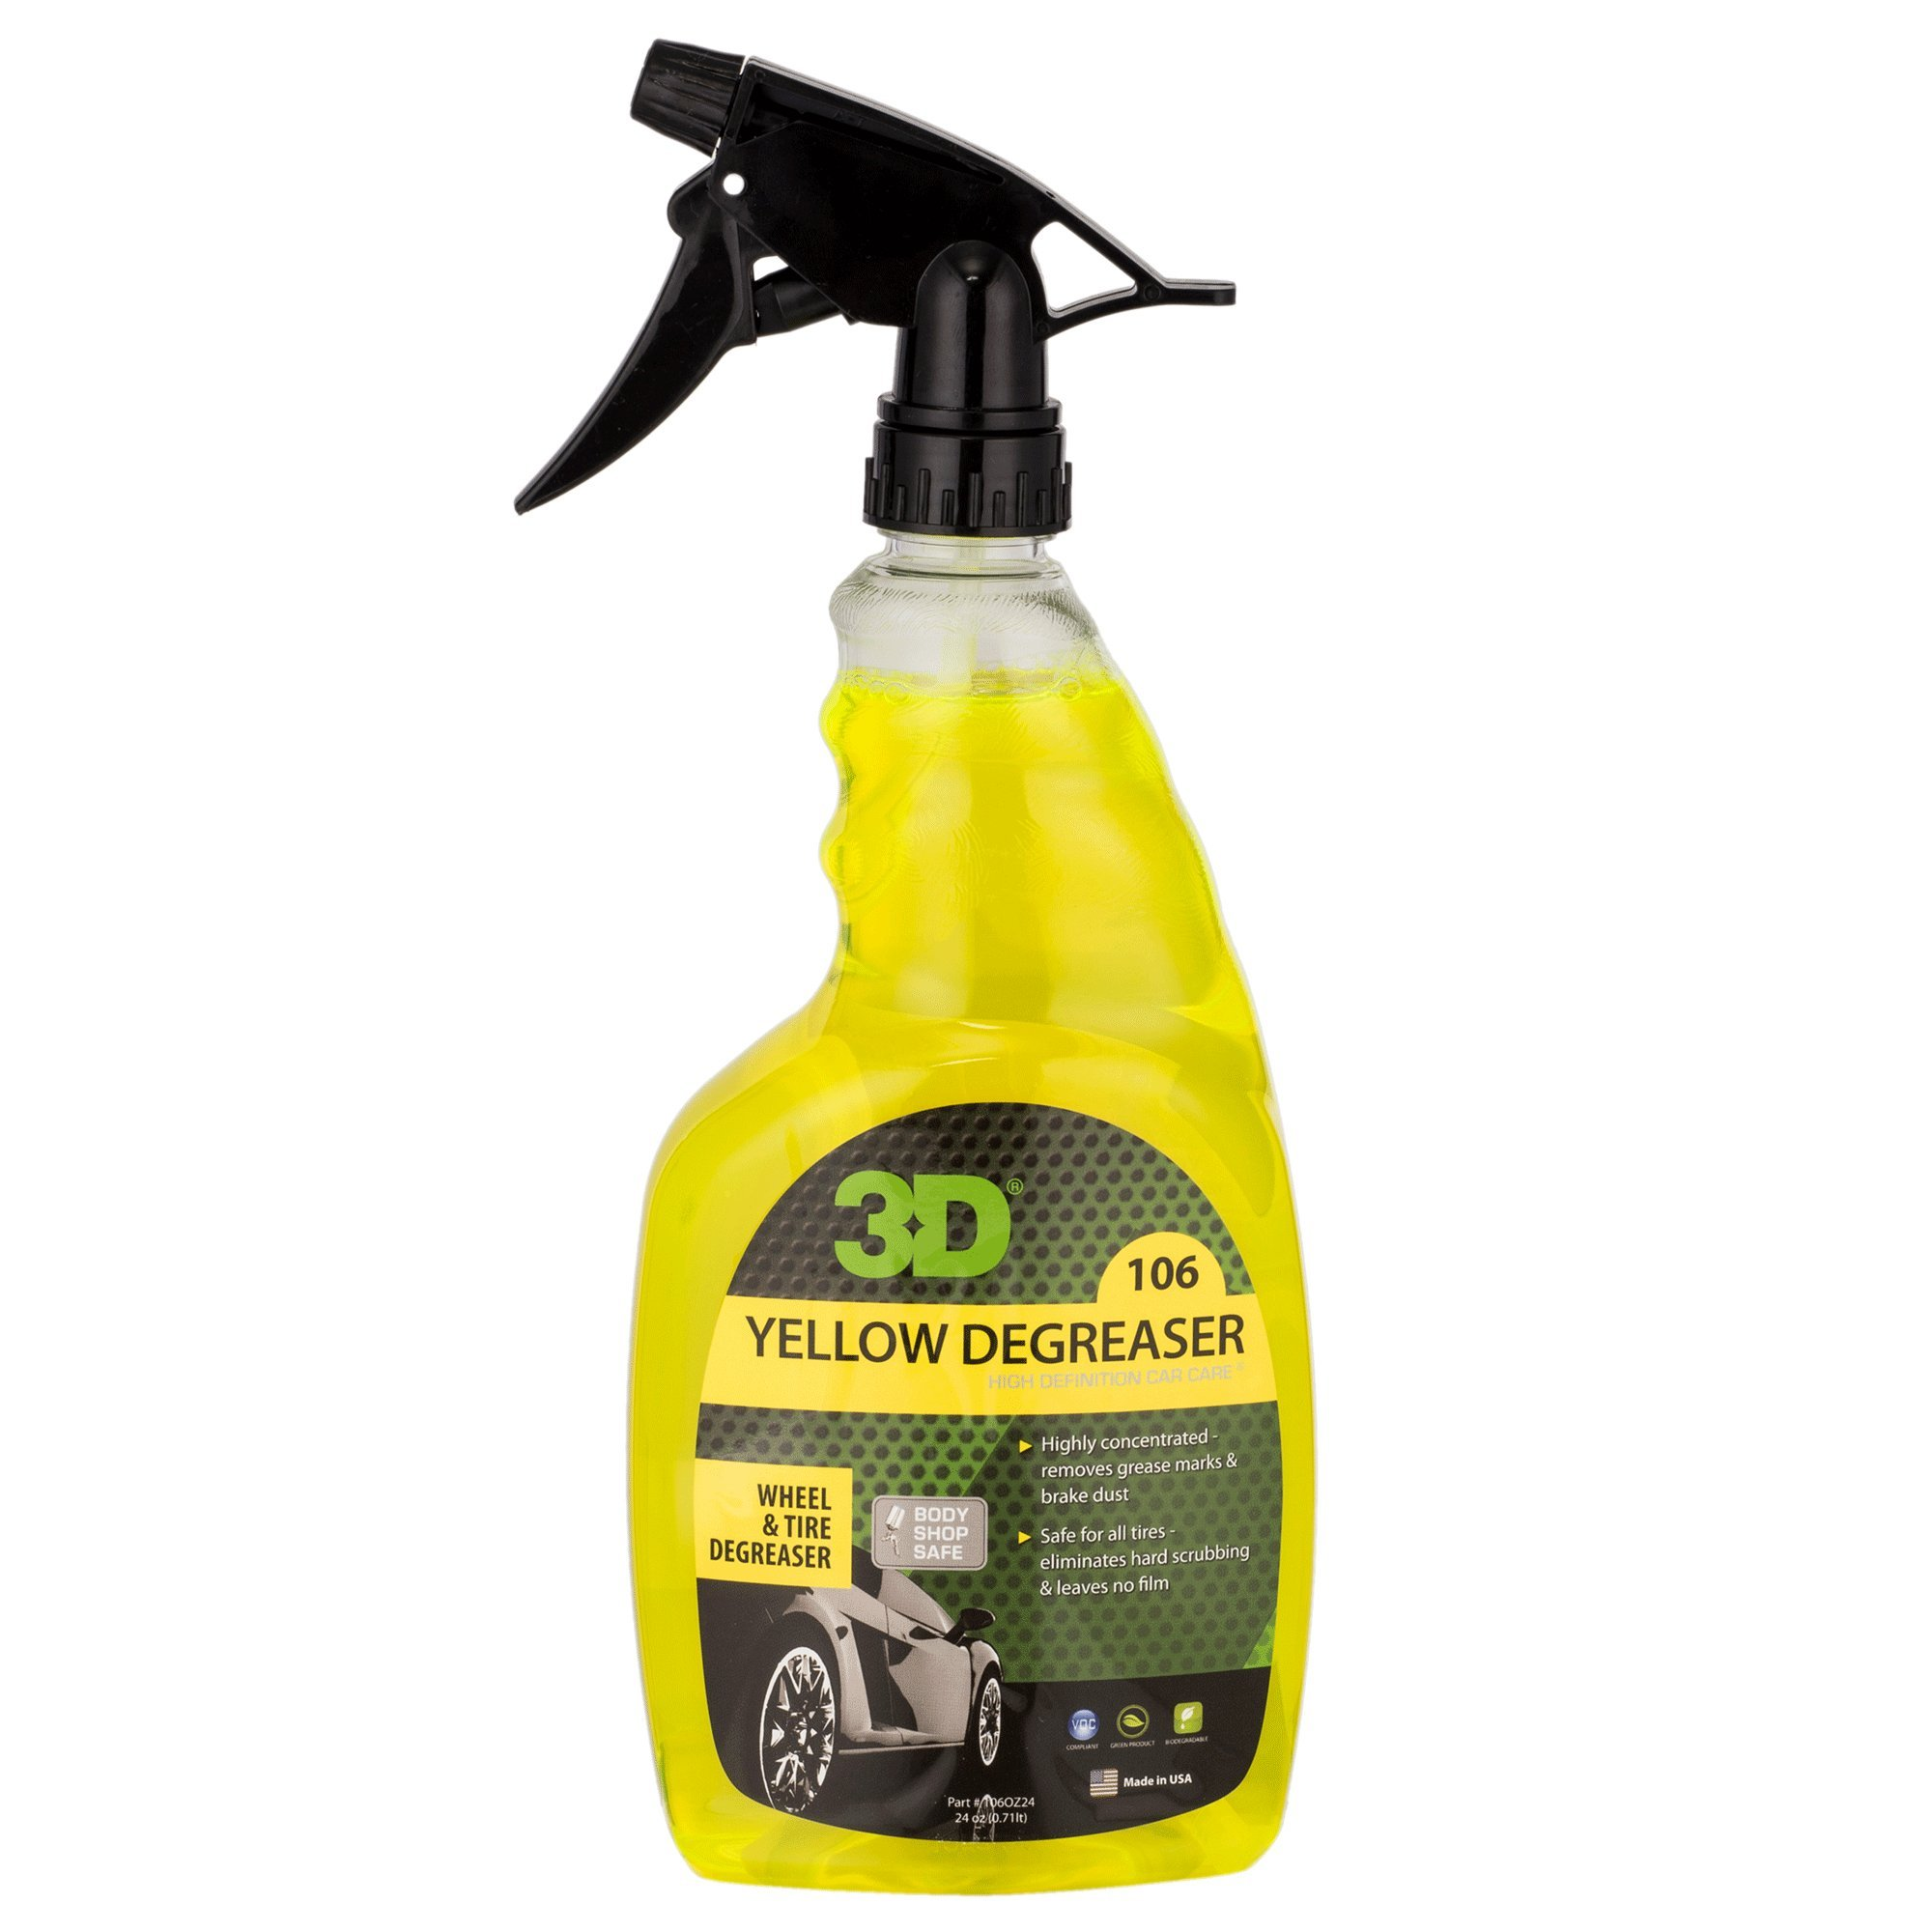 3D Yellow Degreaser Wheel & Tire Cleaner - 24 oz. | Highly Concentrated Degreaser &